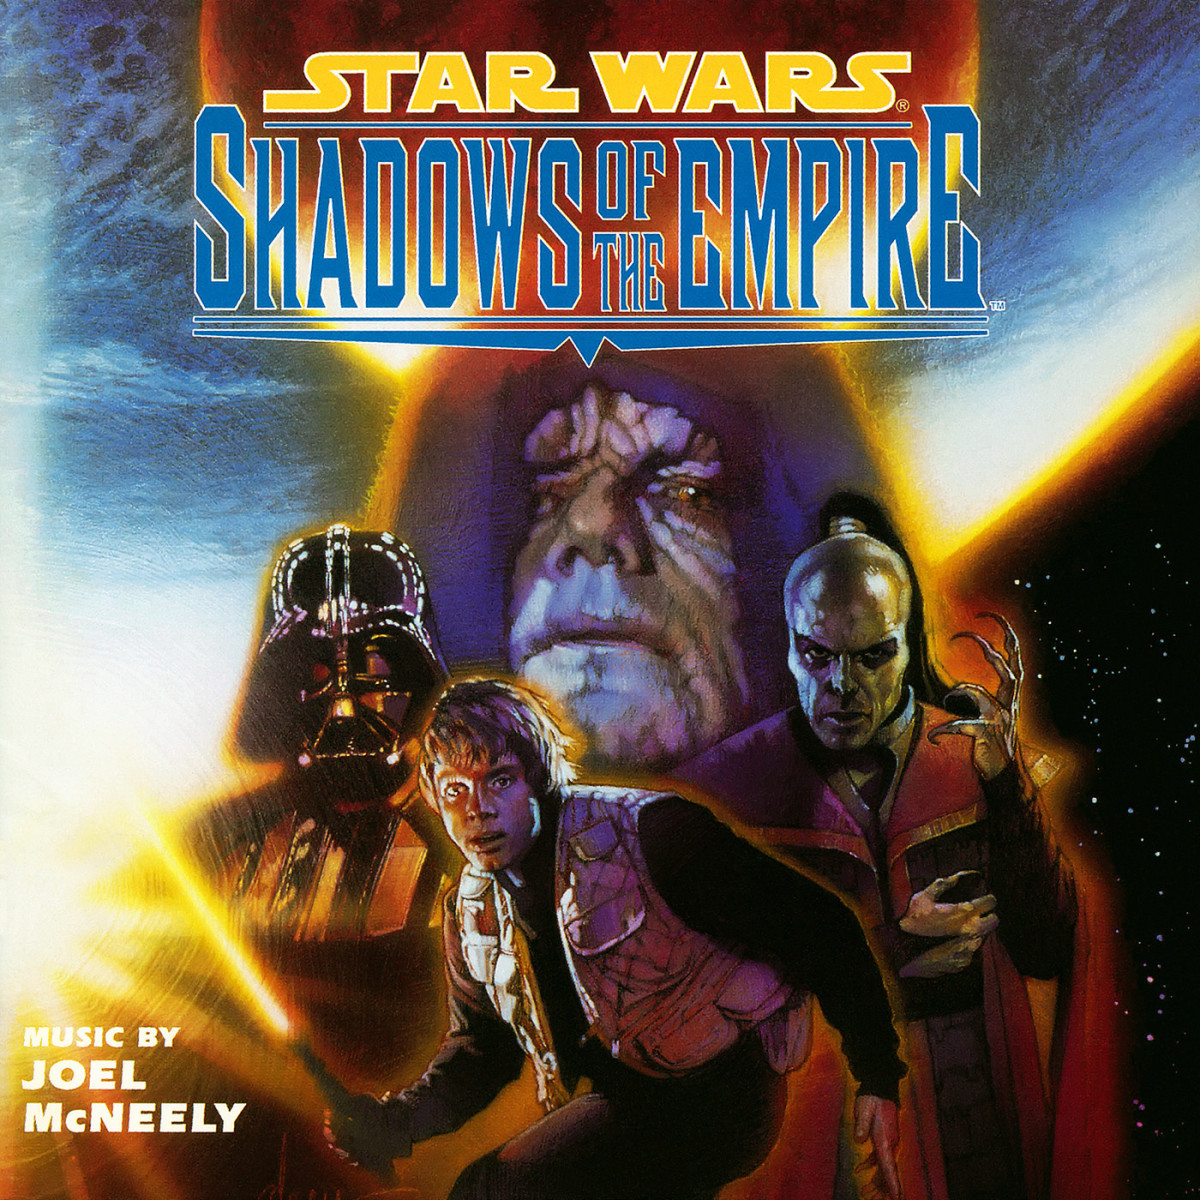 """Star Wars: Shadows of the Empire"" Novel Review"